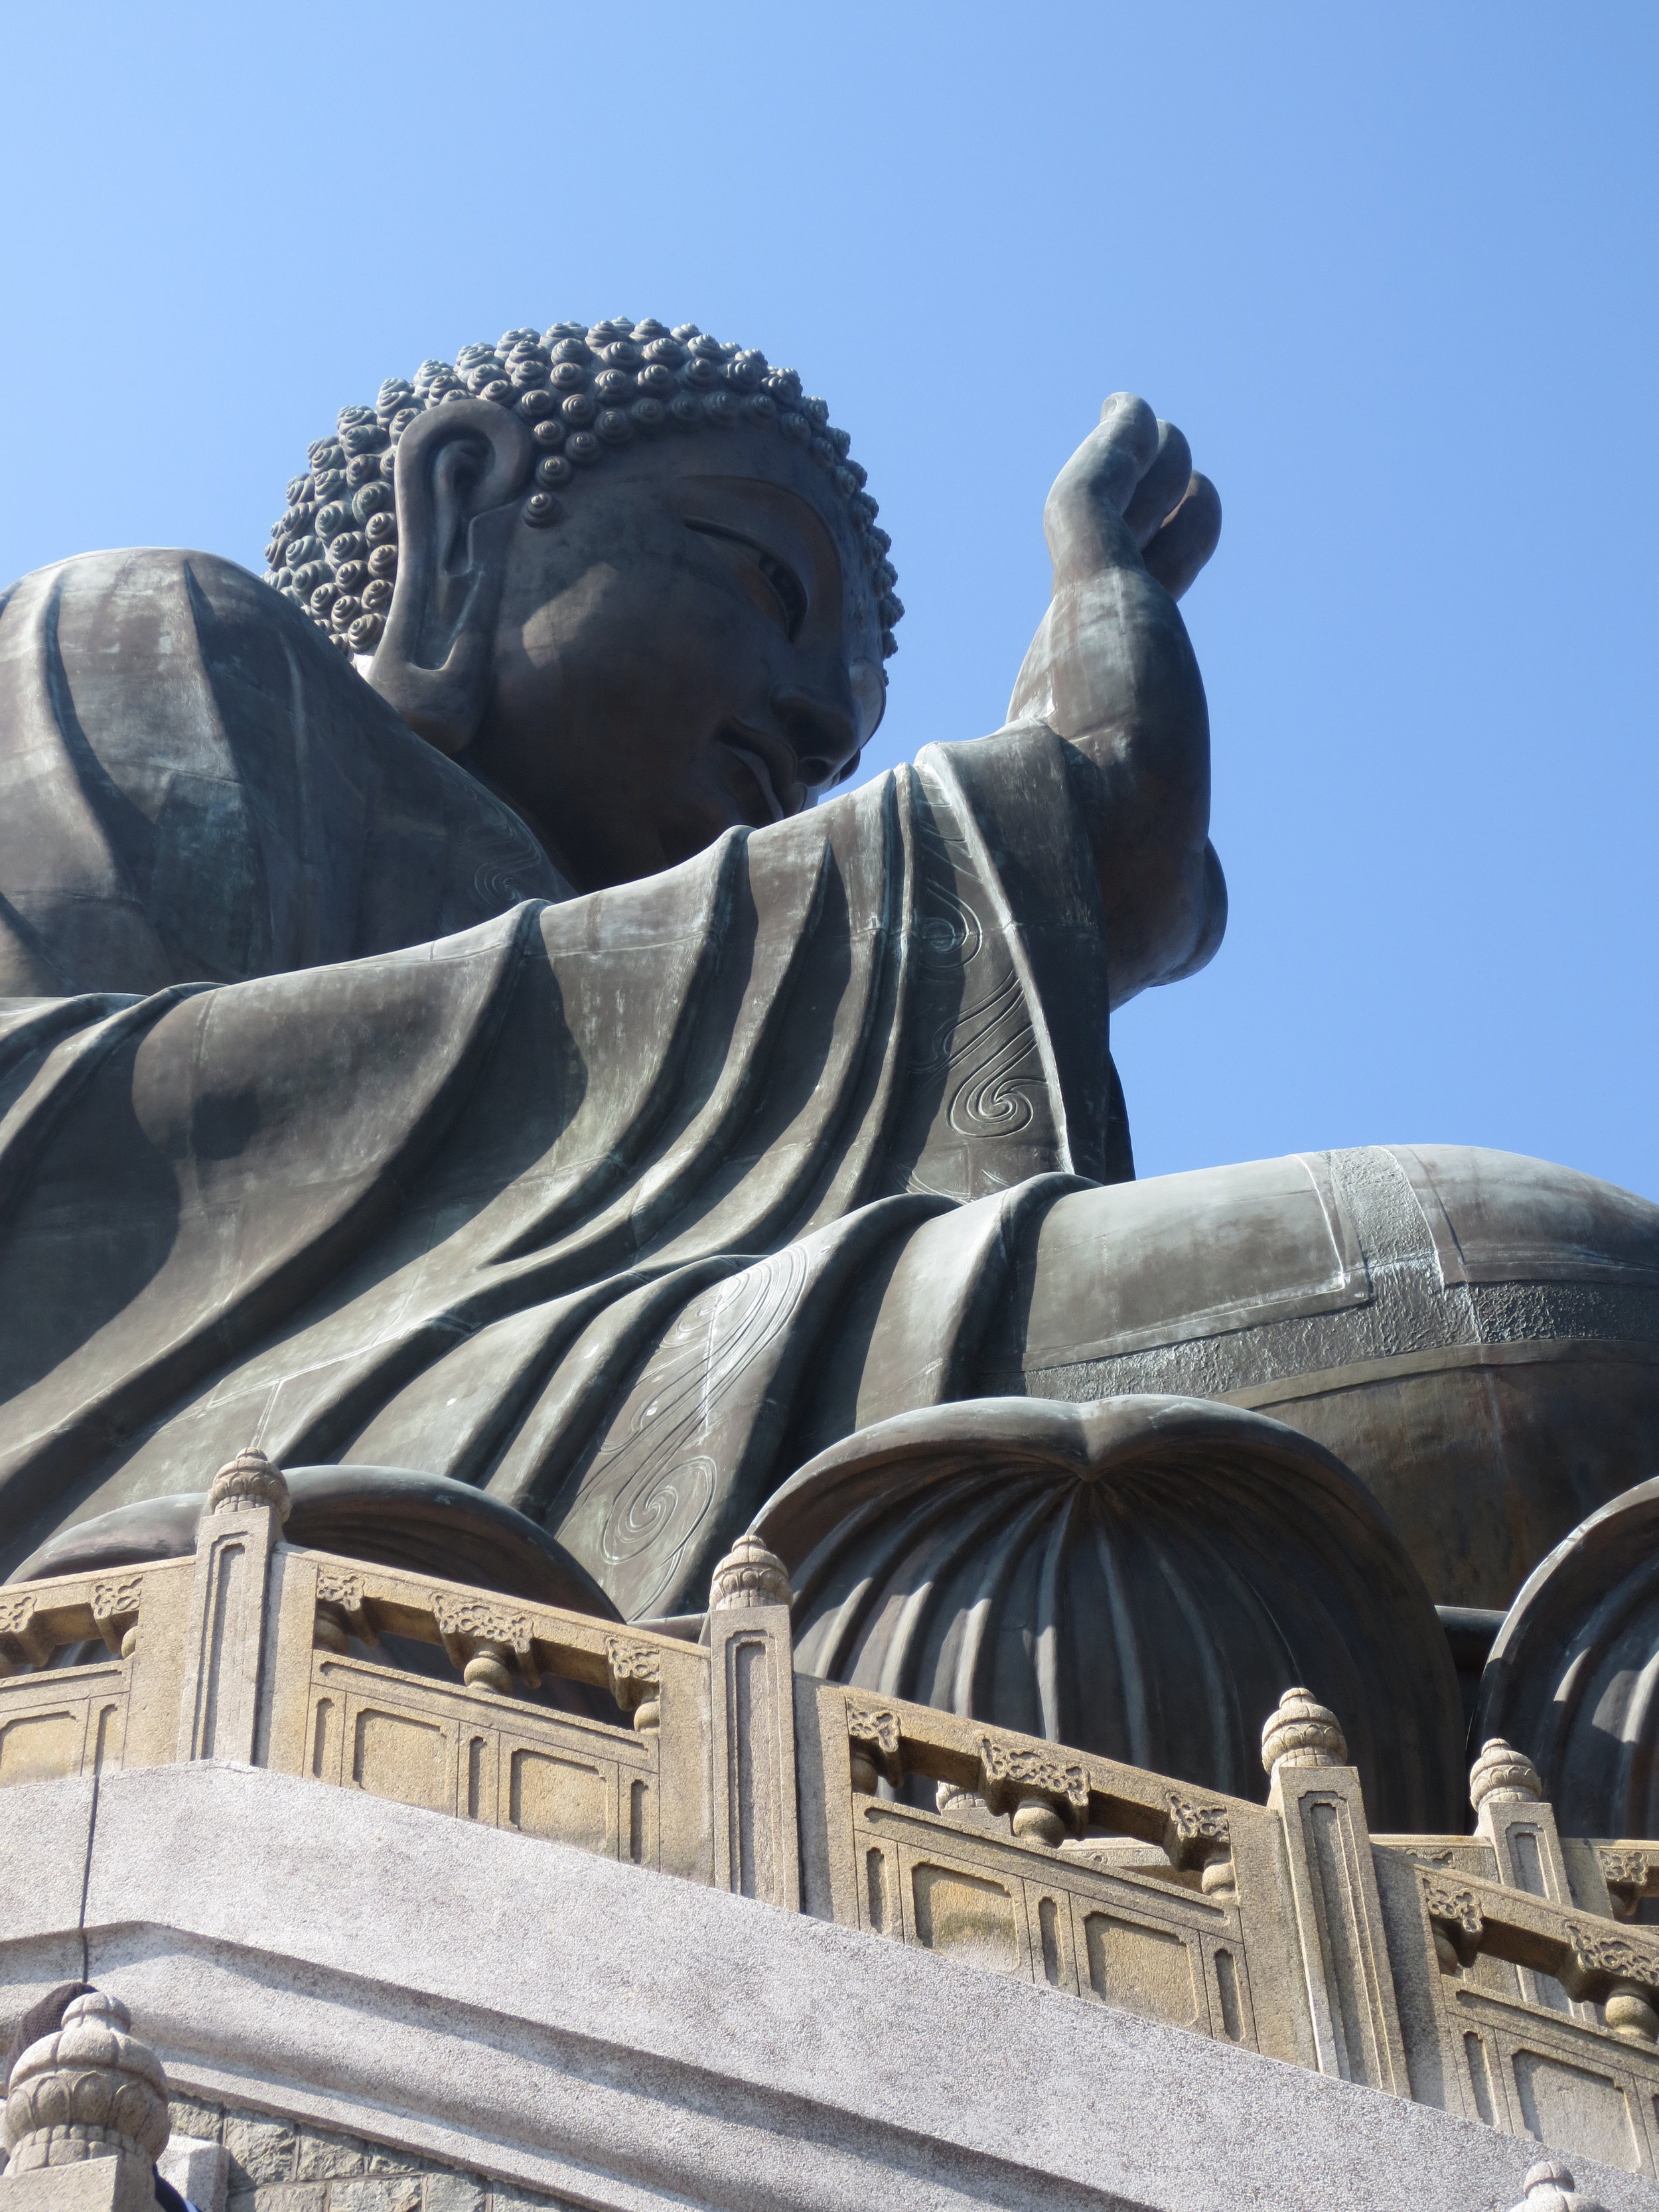 Visiting the Big Buddha.